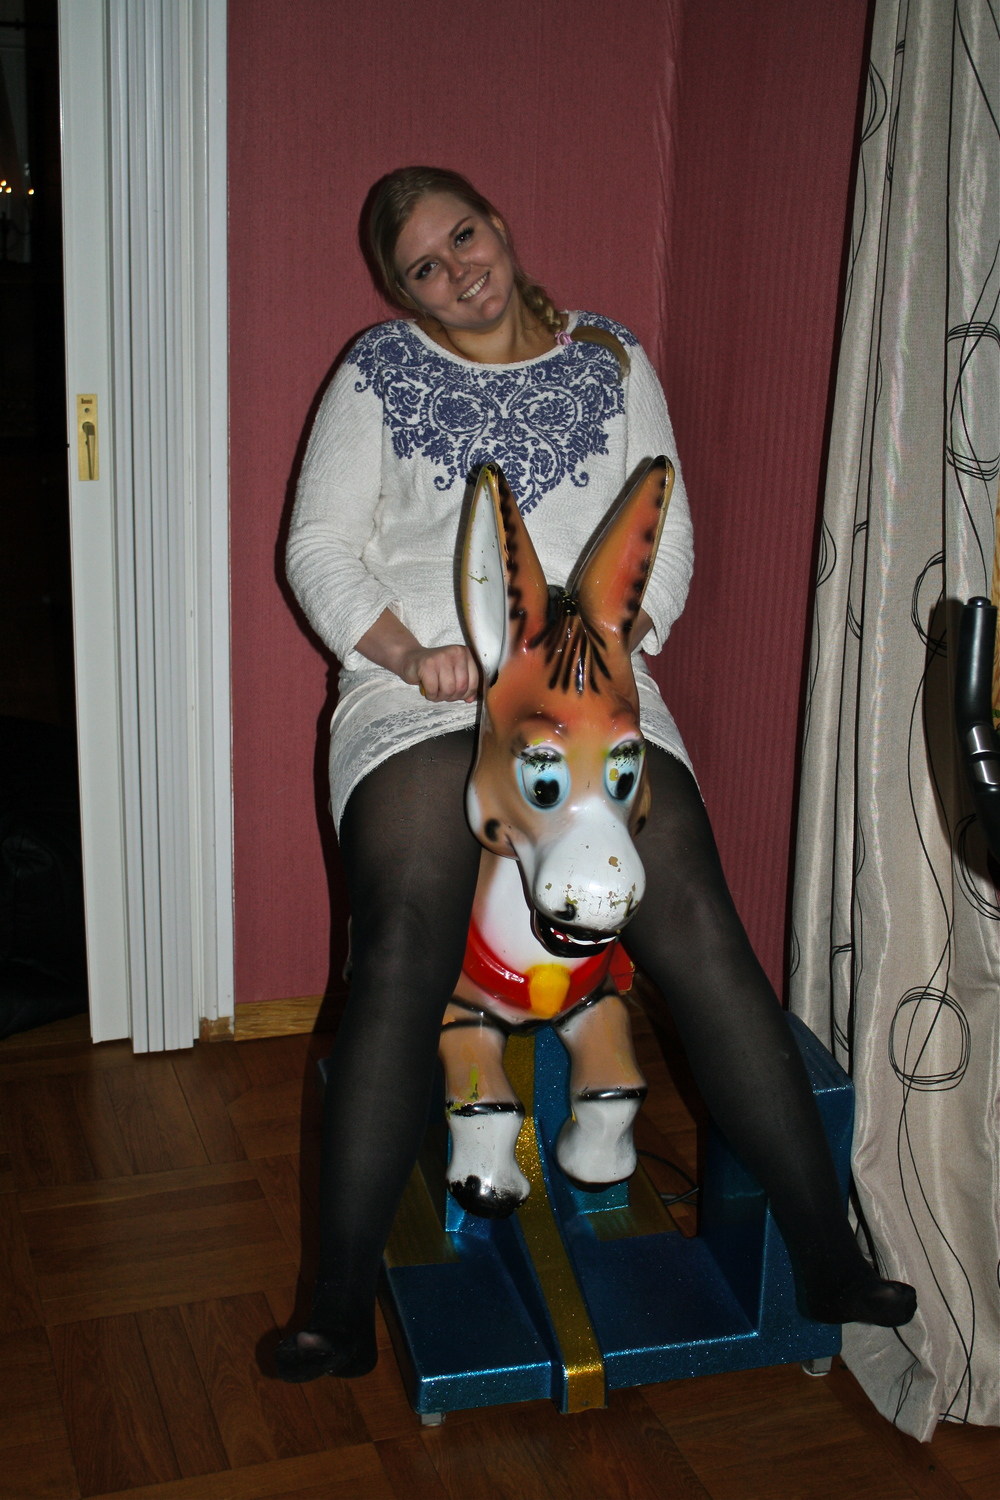 Later on I had to ride another horse, haha!